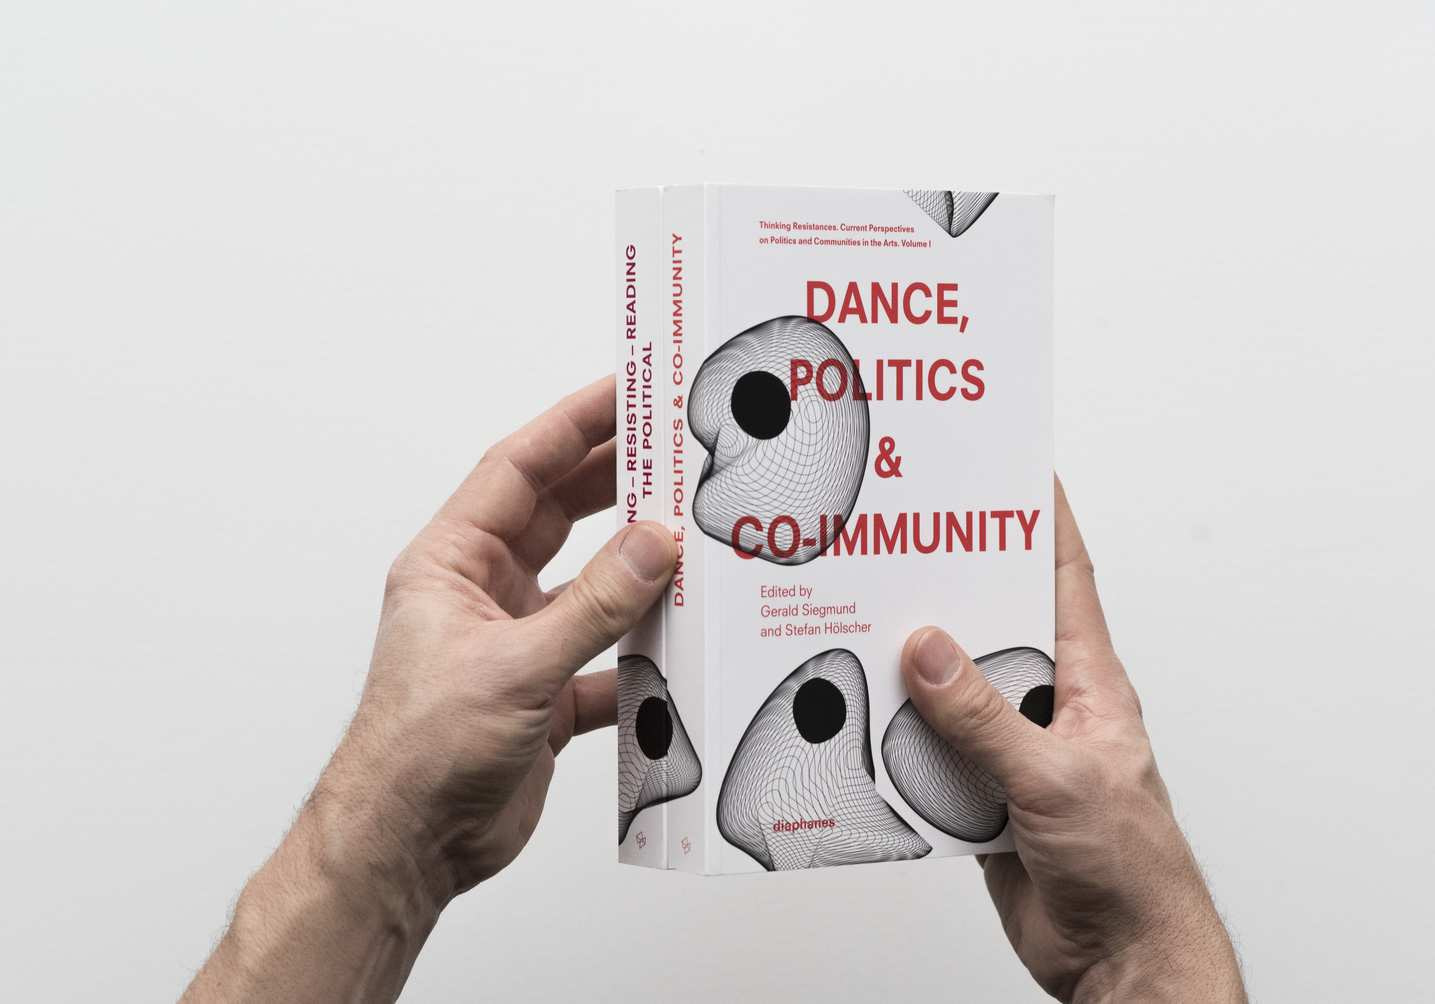 dance-politics-co-immunity-reader-2-1435x1004px